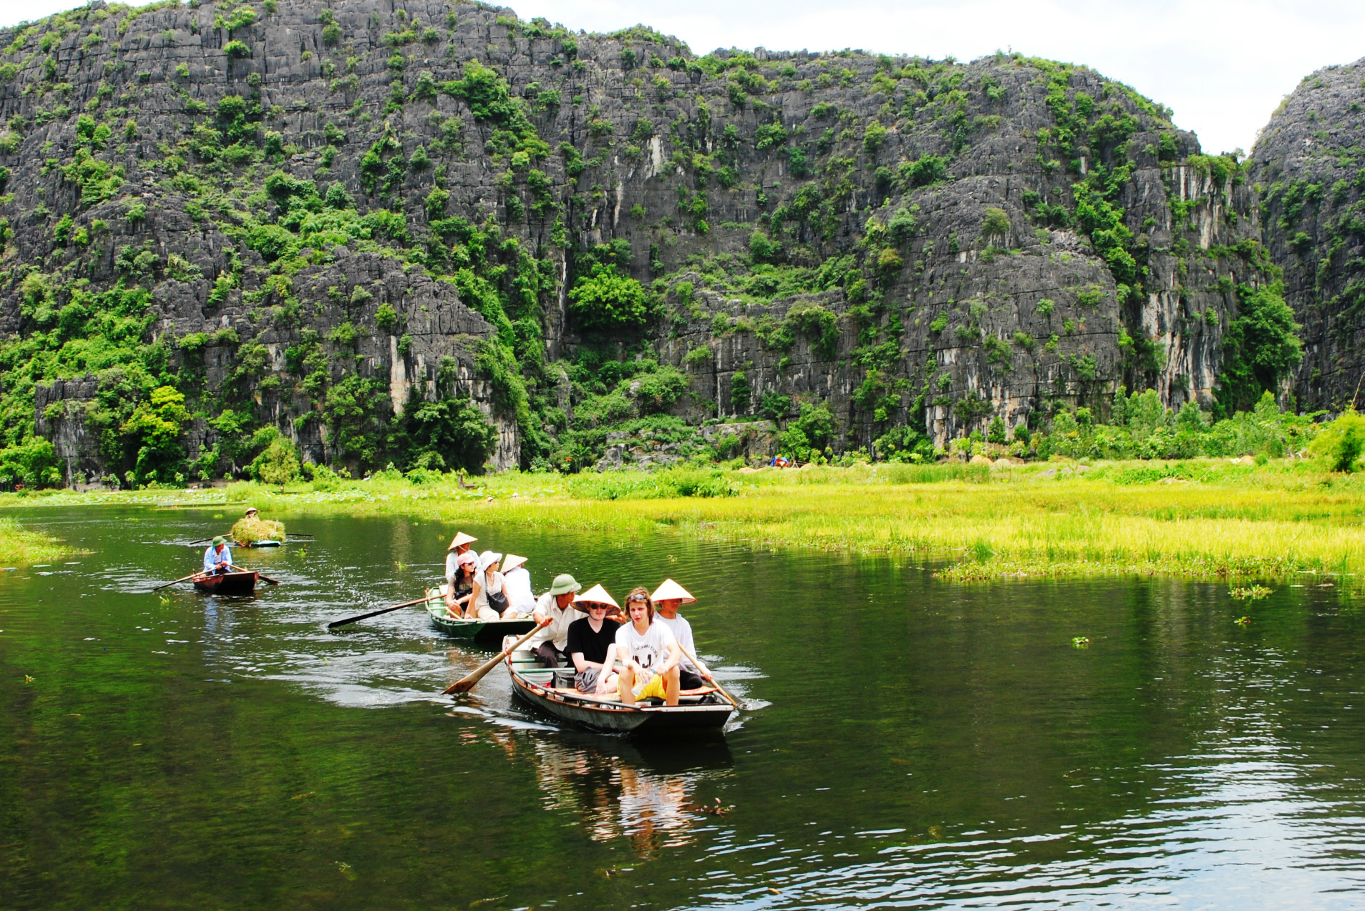 Foreigners-are-enjoying-their-boat-tours-on-the-Tam-Coc-river